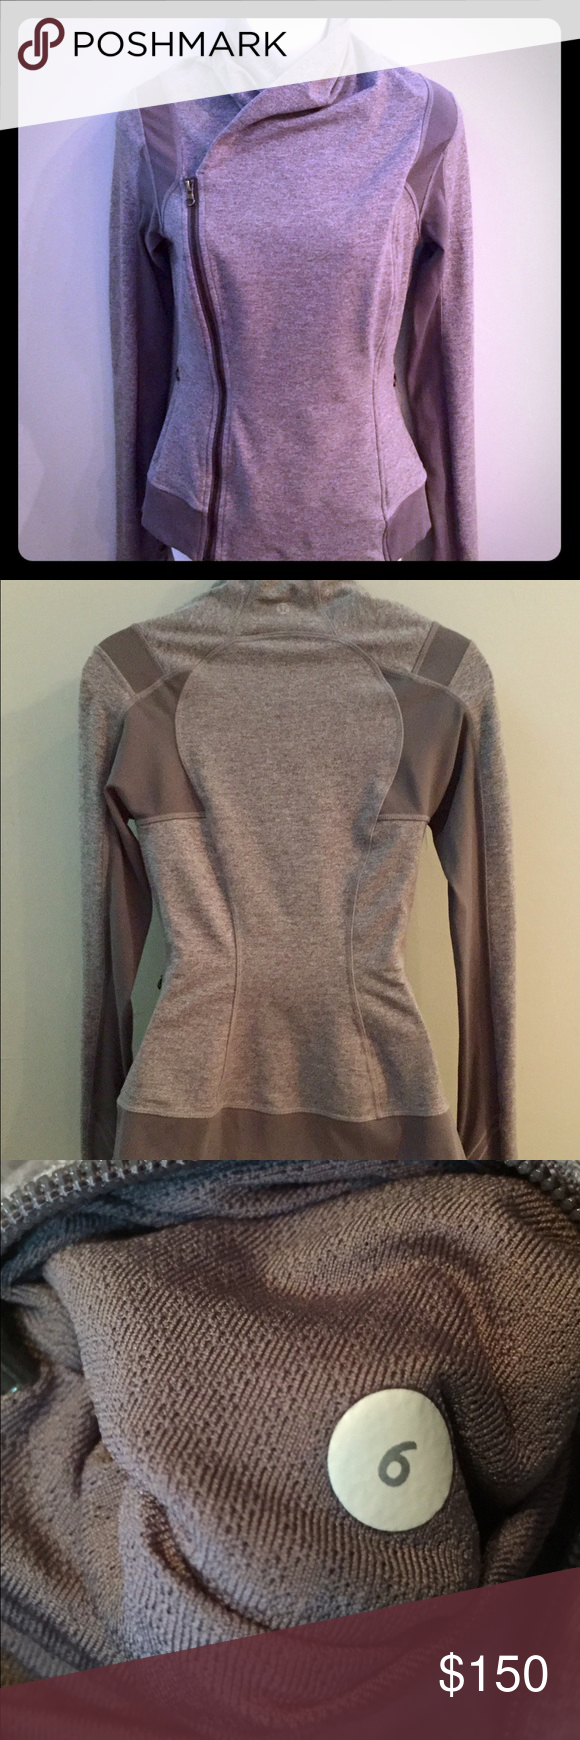 Lululemon Bhatiki Yoga Jacket - 6 - Heathered Gray Lululemon Bhakti Yoga Jacket Size: 6 Color: Heathered Slate Gray Features: Thumbholes and pockets on front.  Highly sought after and ULTRA SEXY on the body!  This jacket is absolutely amazing so, so gorgeous on the body! Condition: Pristine condition!  Only worn ONCE with no signs of wear whatsoever! lululemon athletica Jackets & Coats